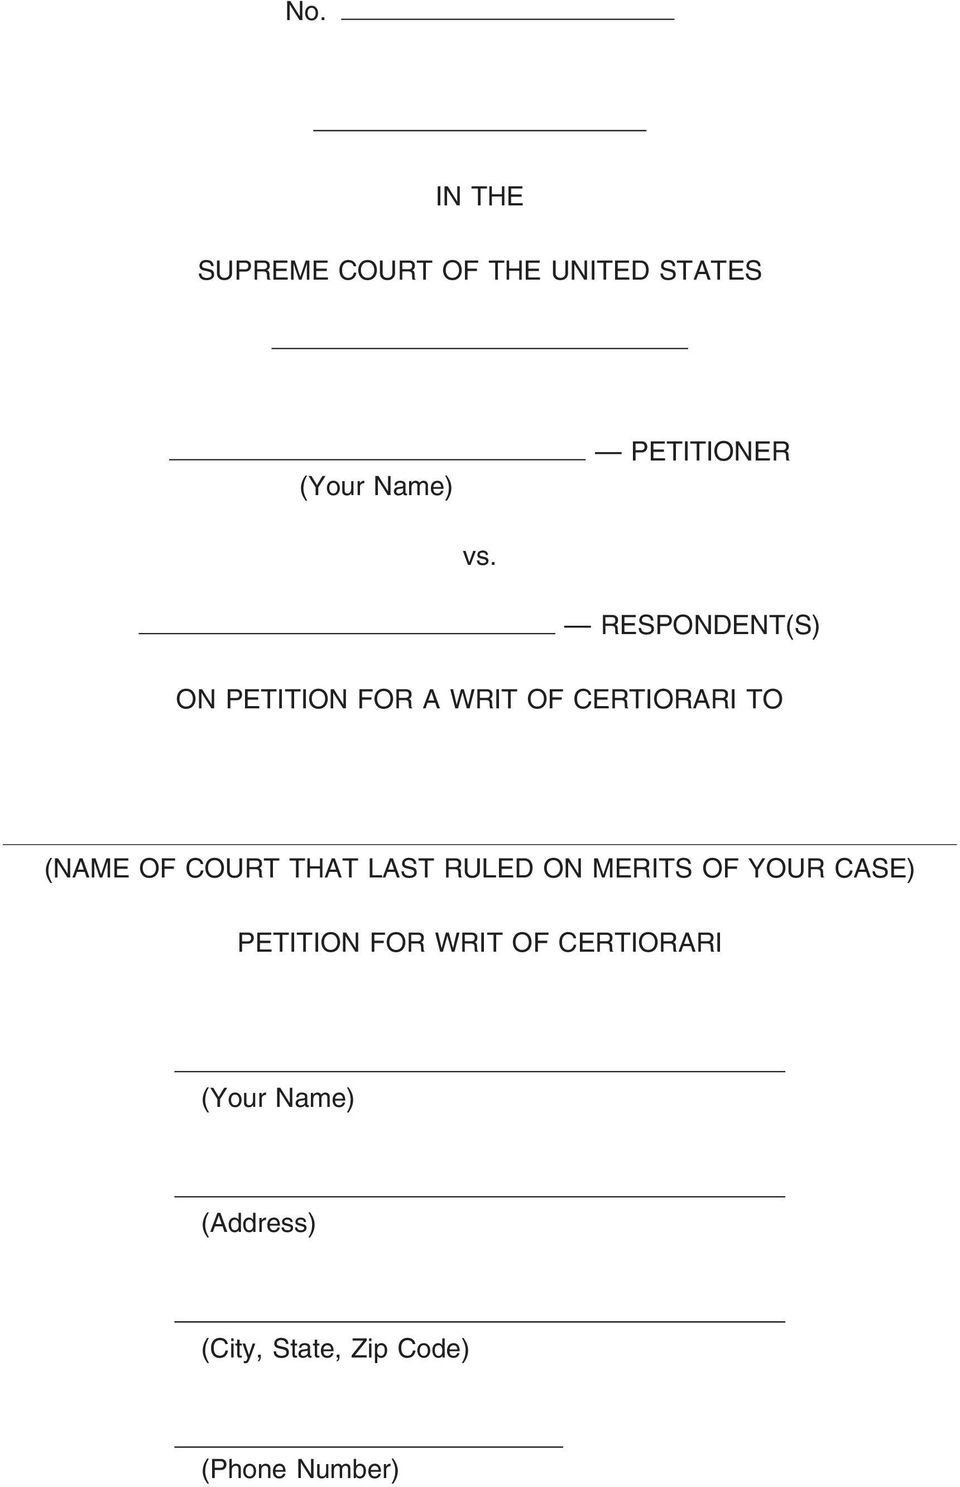 COURT THAT LAST RULED ON MERITS OF YOUR CASE) PETITION FOR WRIT OF